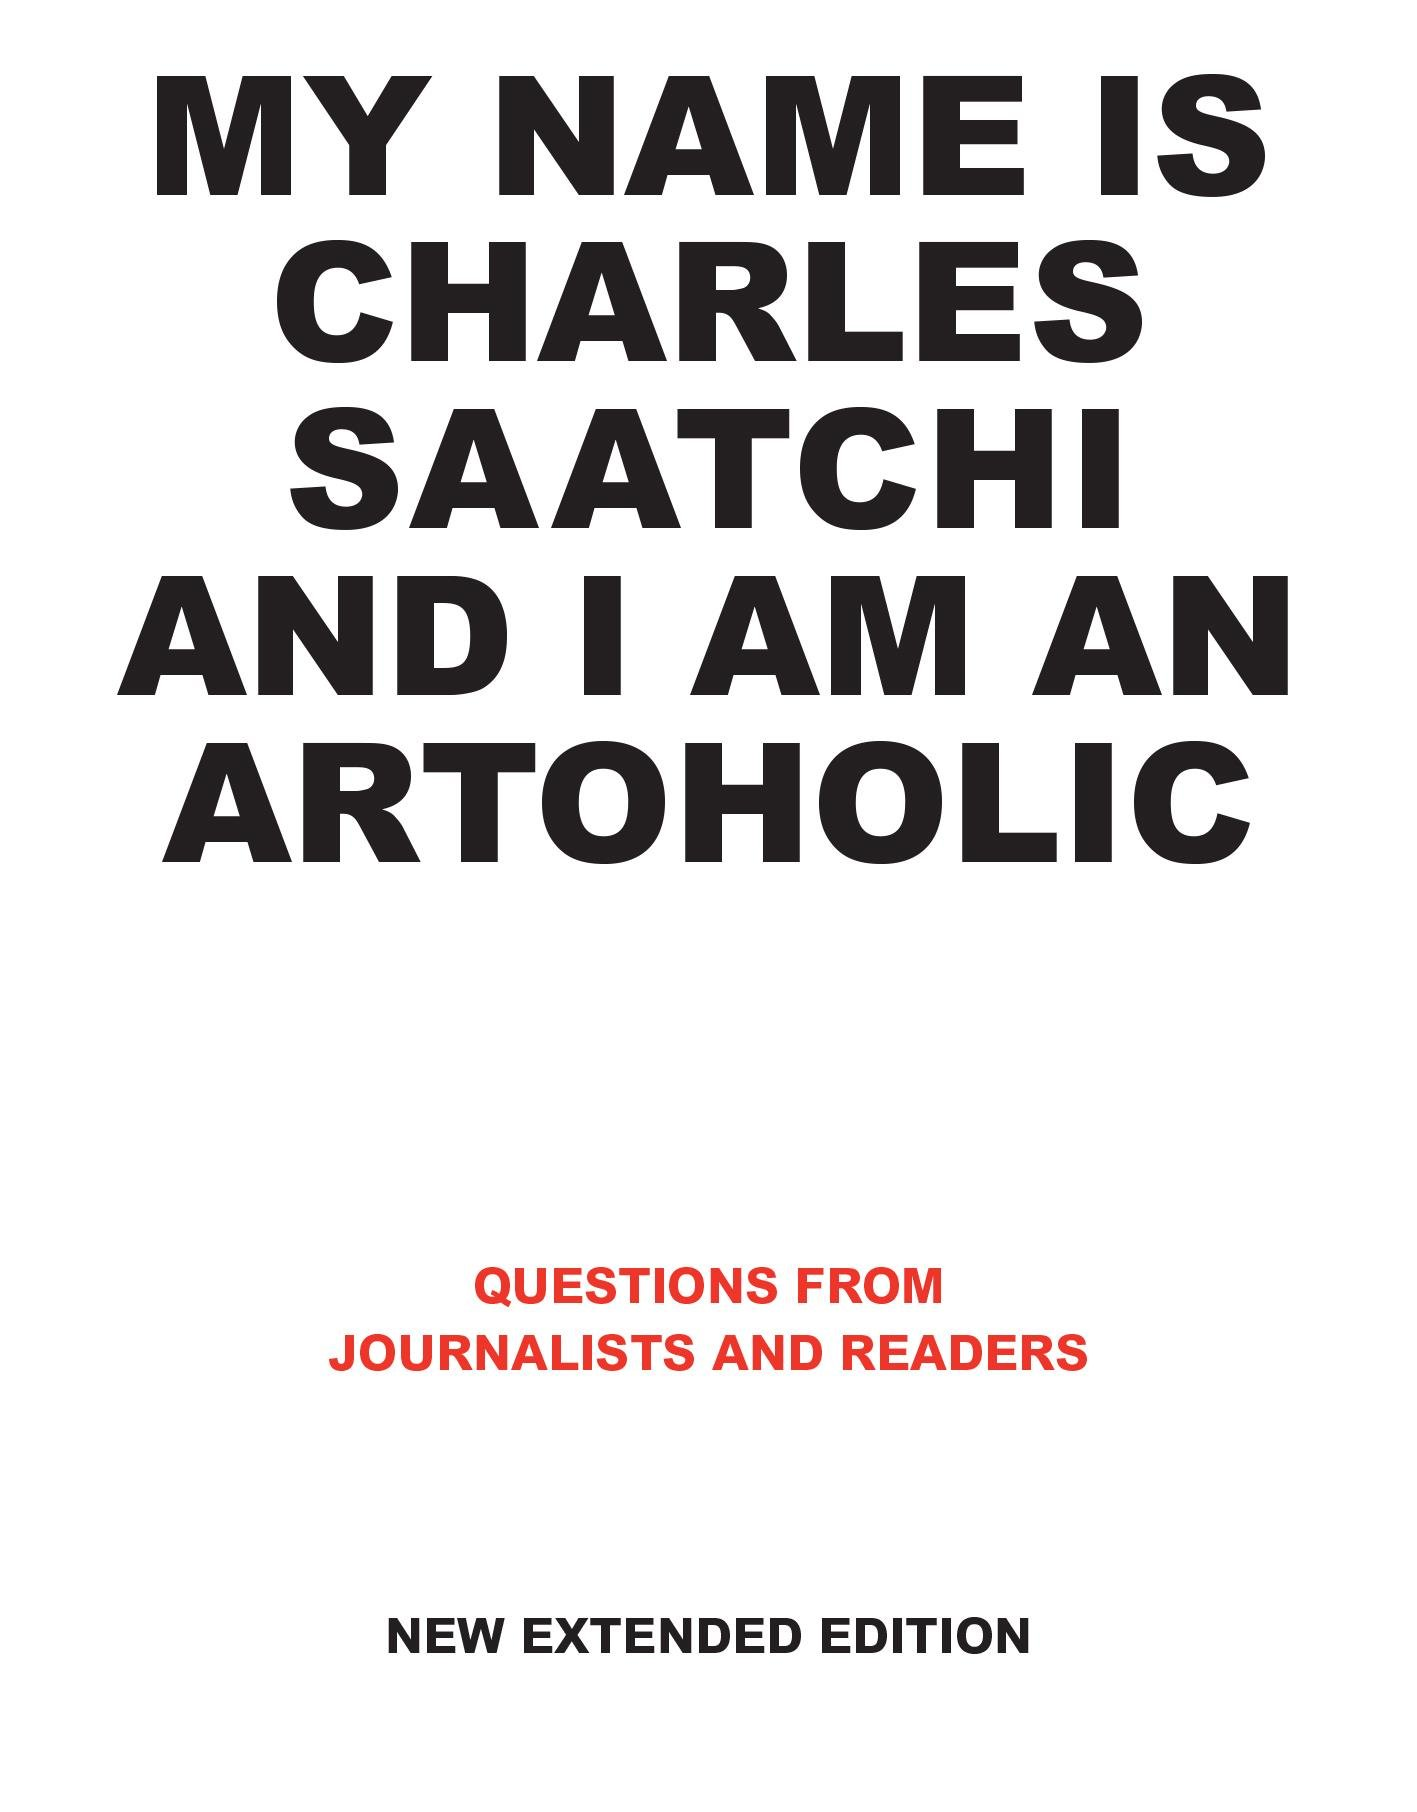 Download My Name Is Charles Saatchi And I Am An Artoholic. New Extended Edition: Questions From Journalists And Readers (English Ed... 